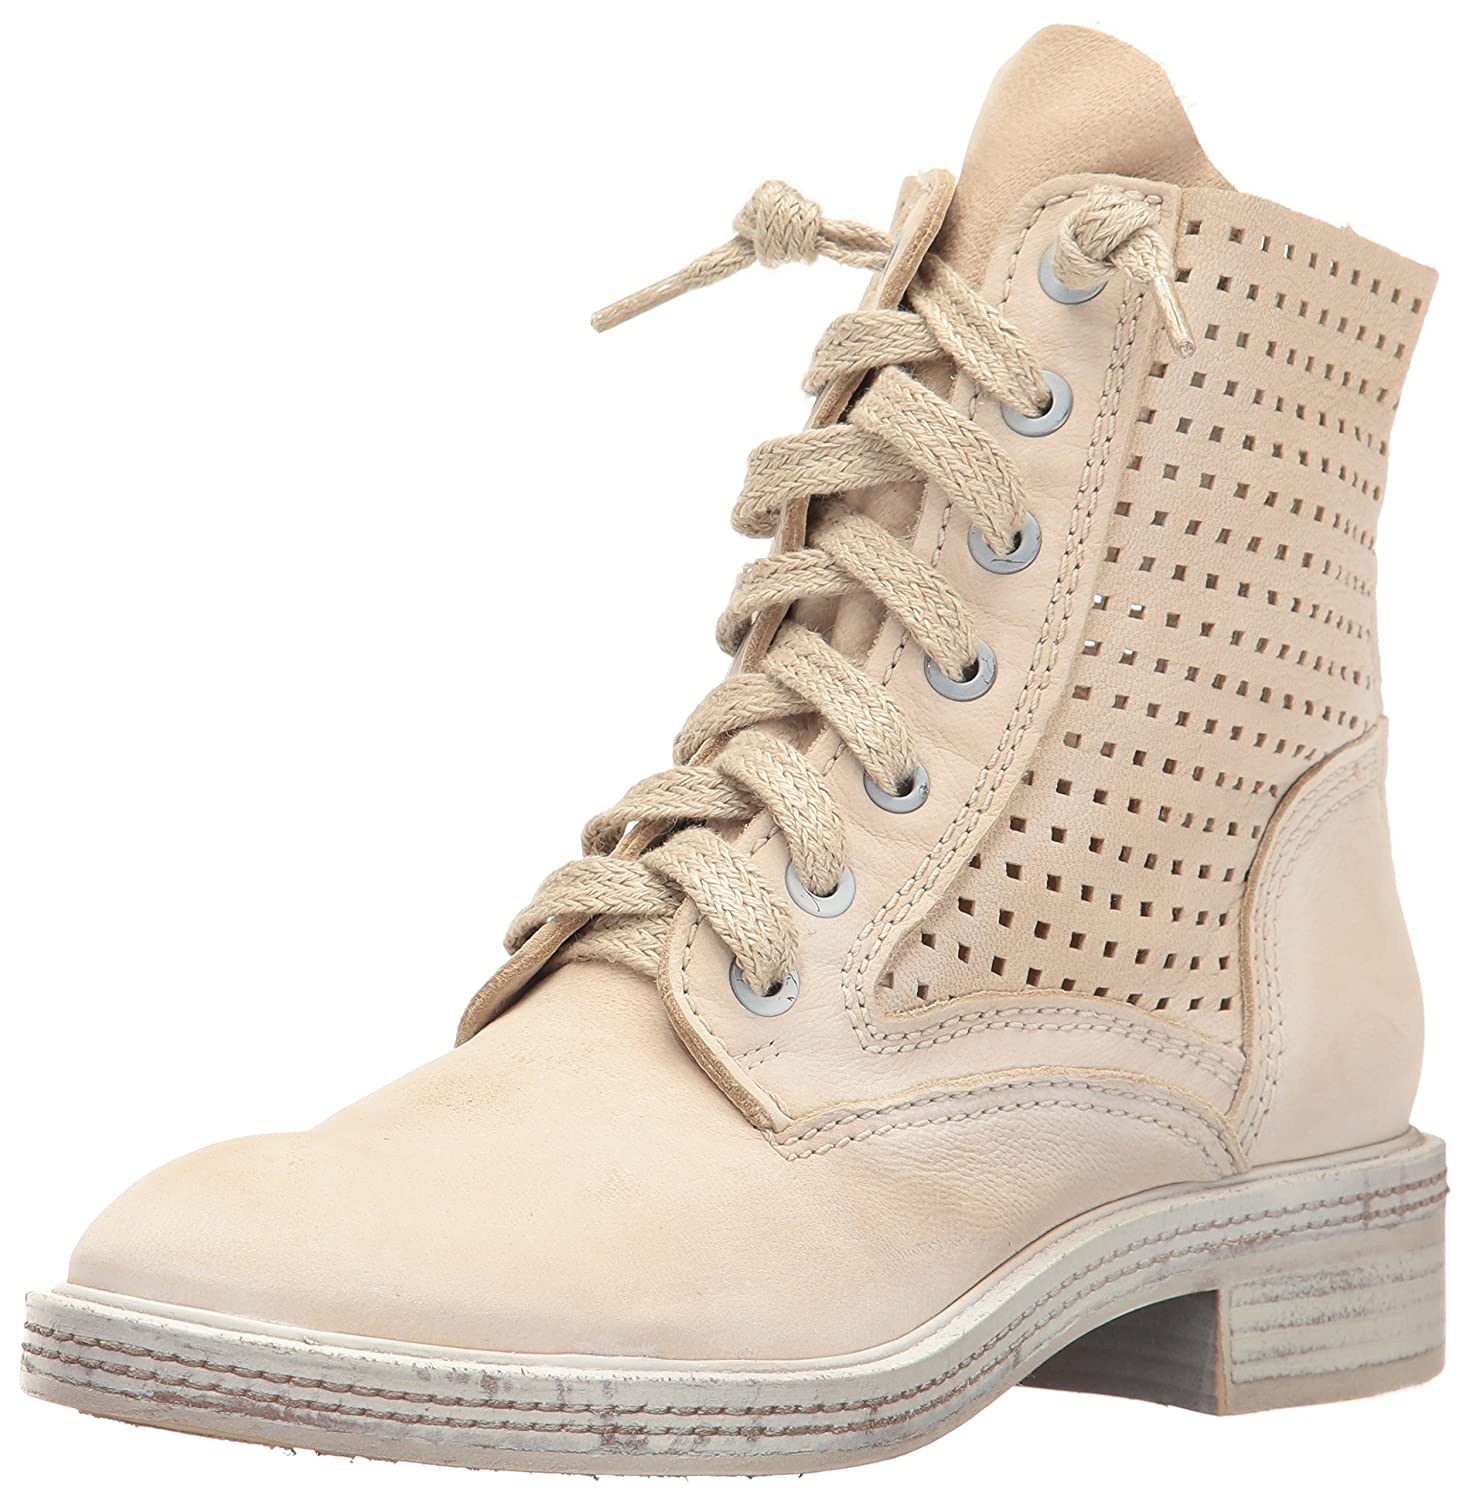 Dolce Vita Women's Aldis Combat Boot B01N41XPTS 9.5 B(M) US|Sand Perforated Nubuck